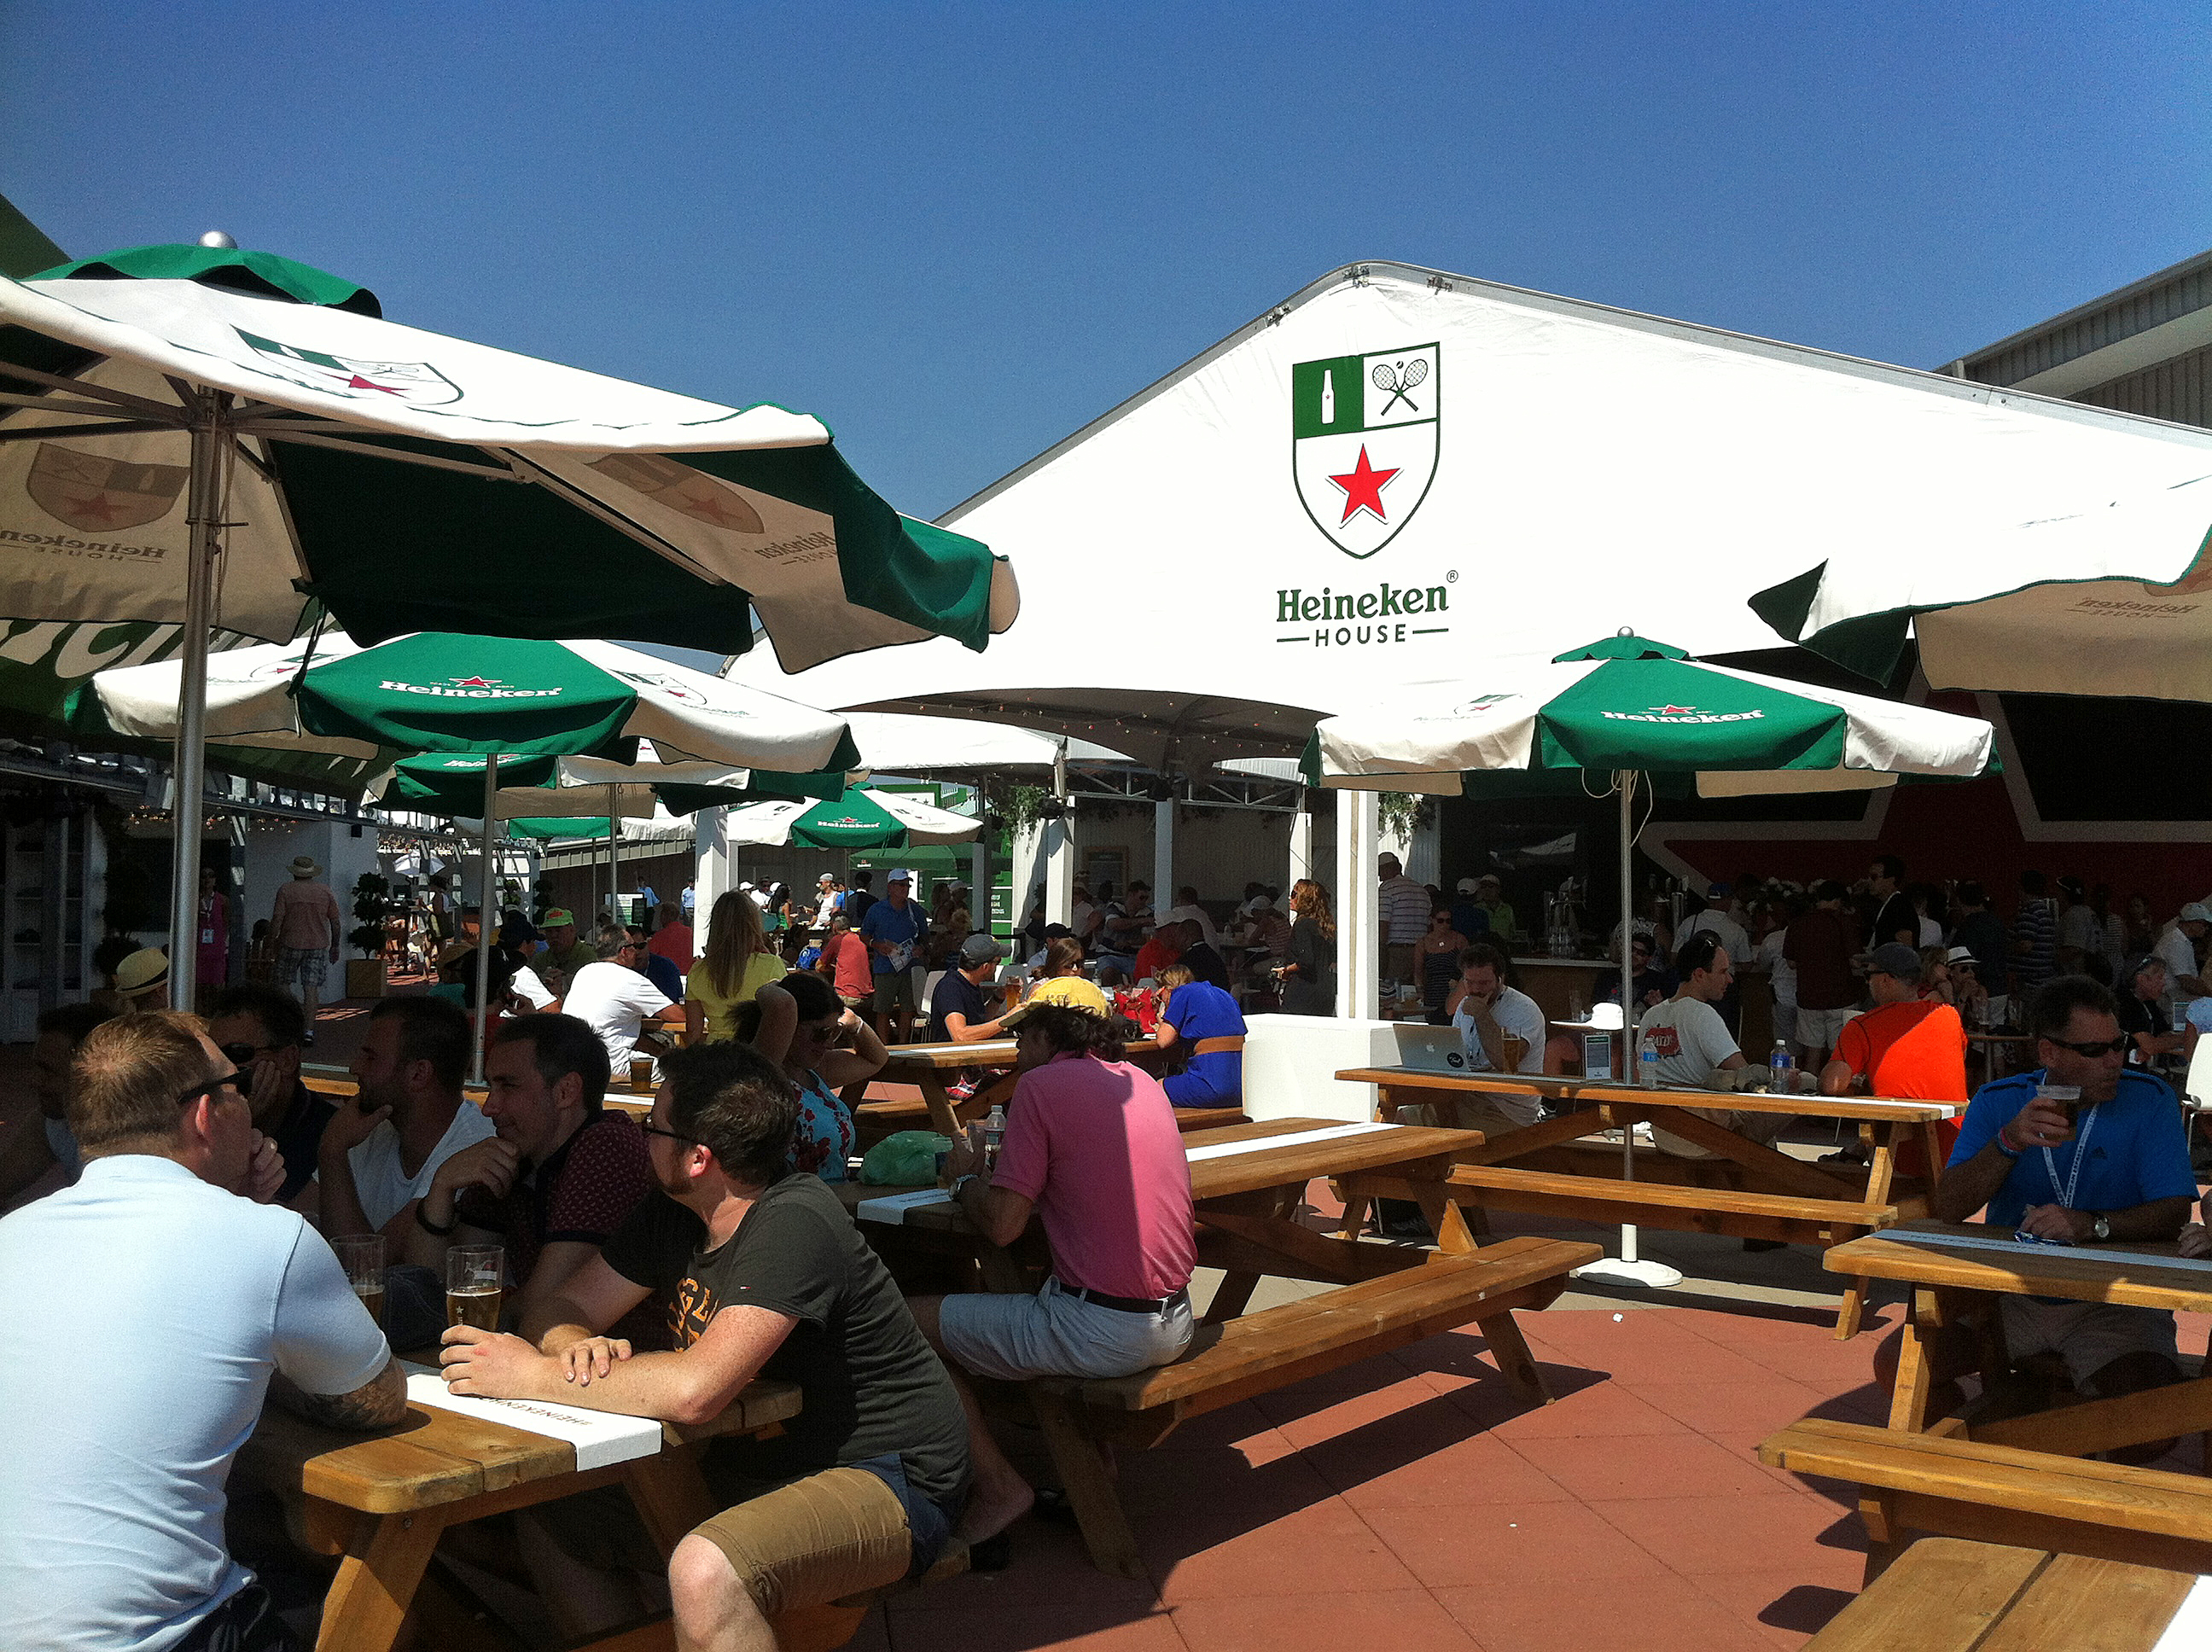 Now in its 23rd year of sponsoring the U.S. Open, Heineken brought back its popular Heineken House, which this year offered sandwiches created by NYC-based chef Mario Carbone.